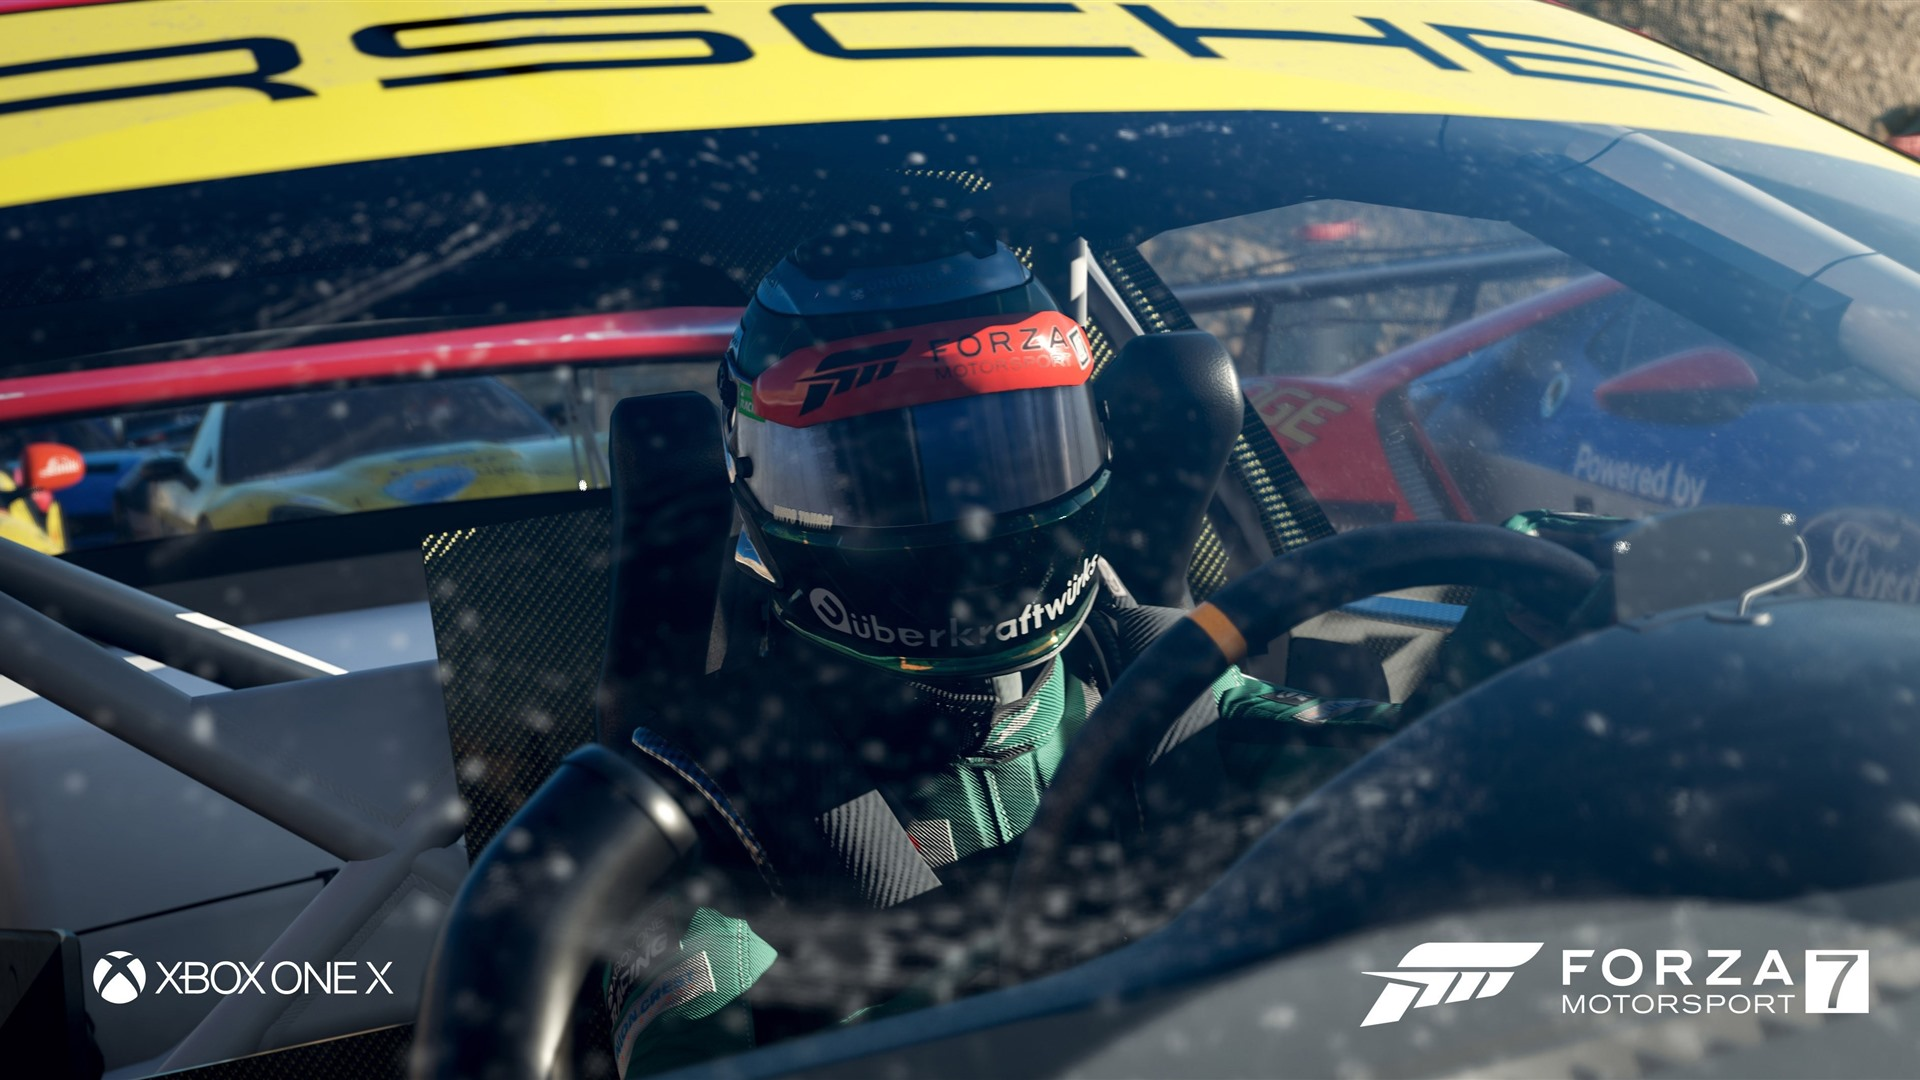 Wallpaper Forza Motorsport 7 Xbox One Games 3840x2160 Uhd 4k Picture Image